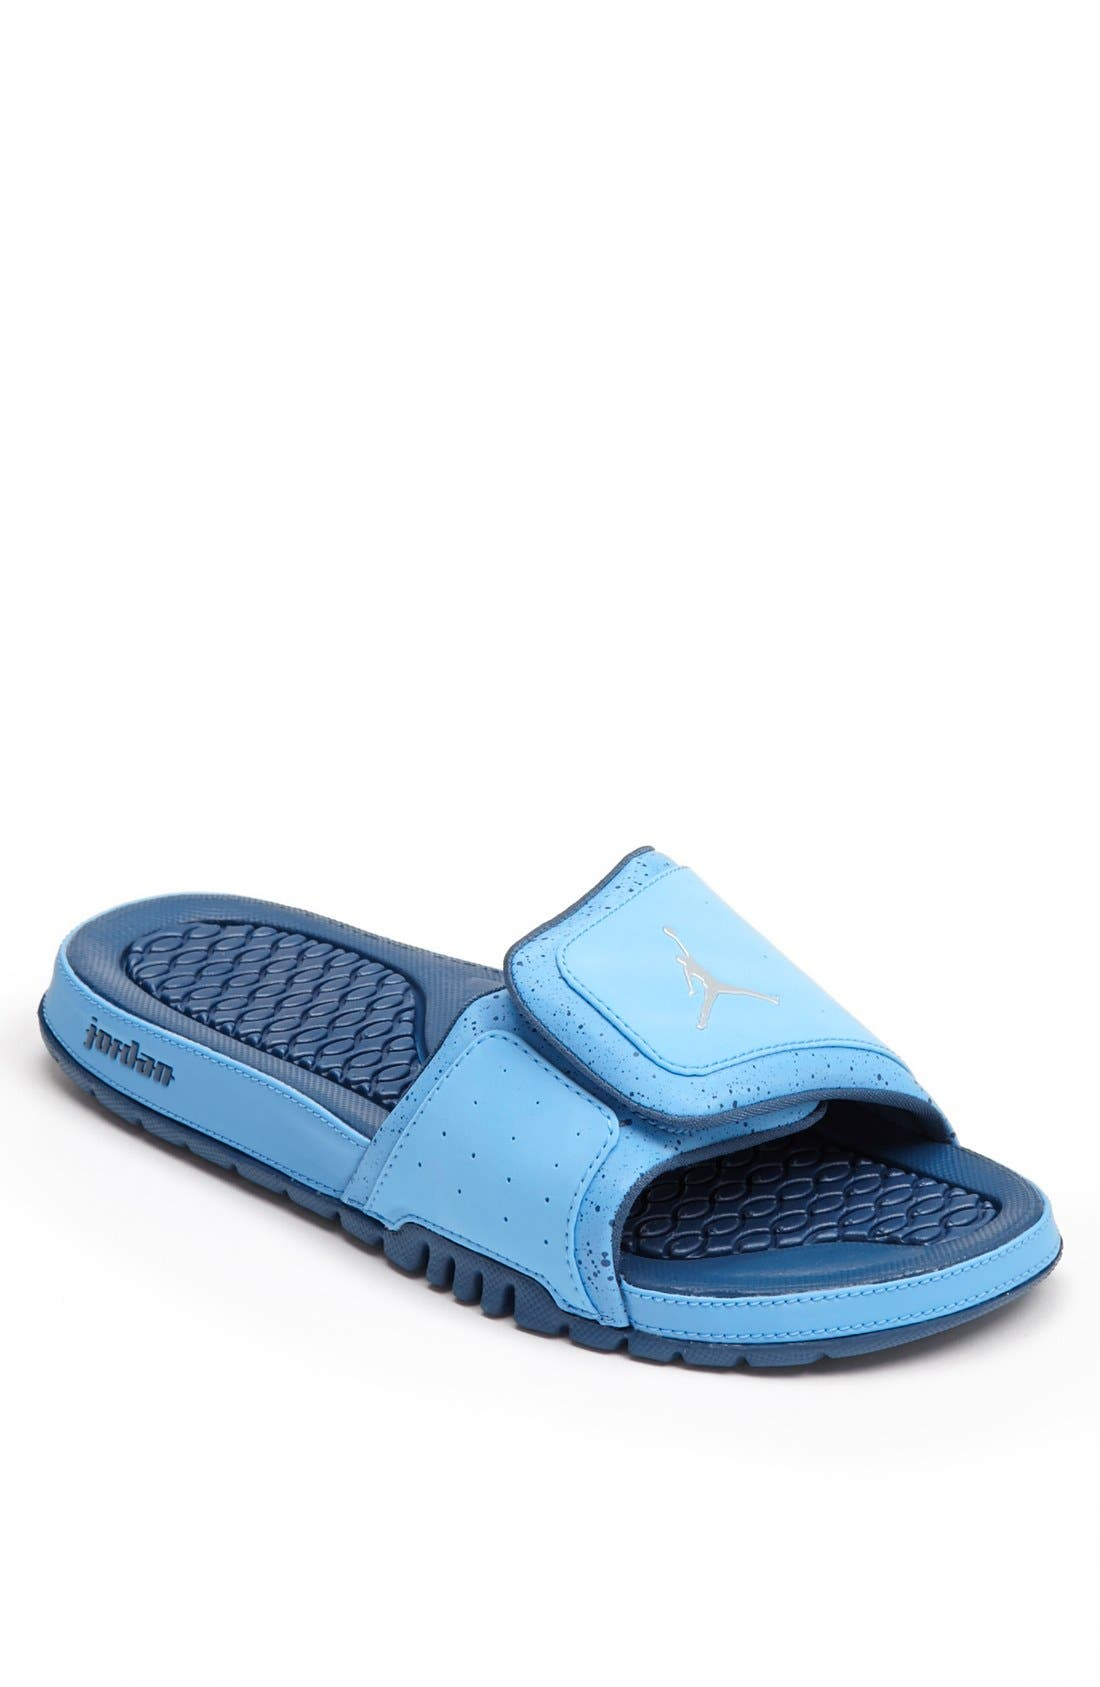 Alternate Image 1 Selected - Nike 'Jordan Hydro II' Sandal (Men)